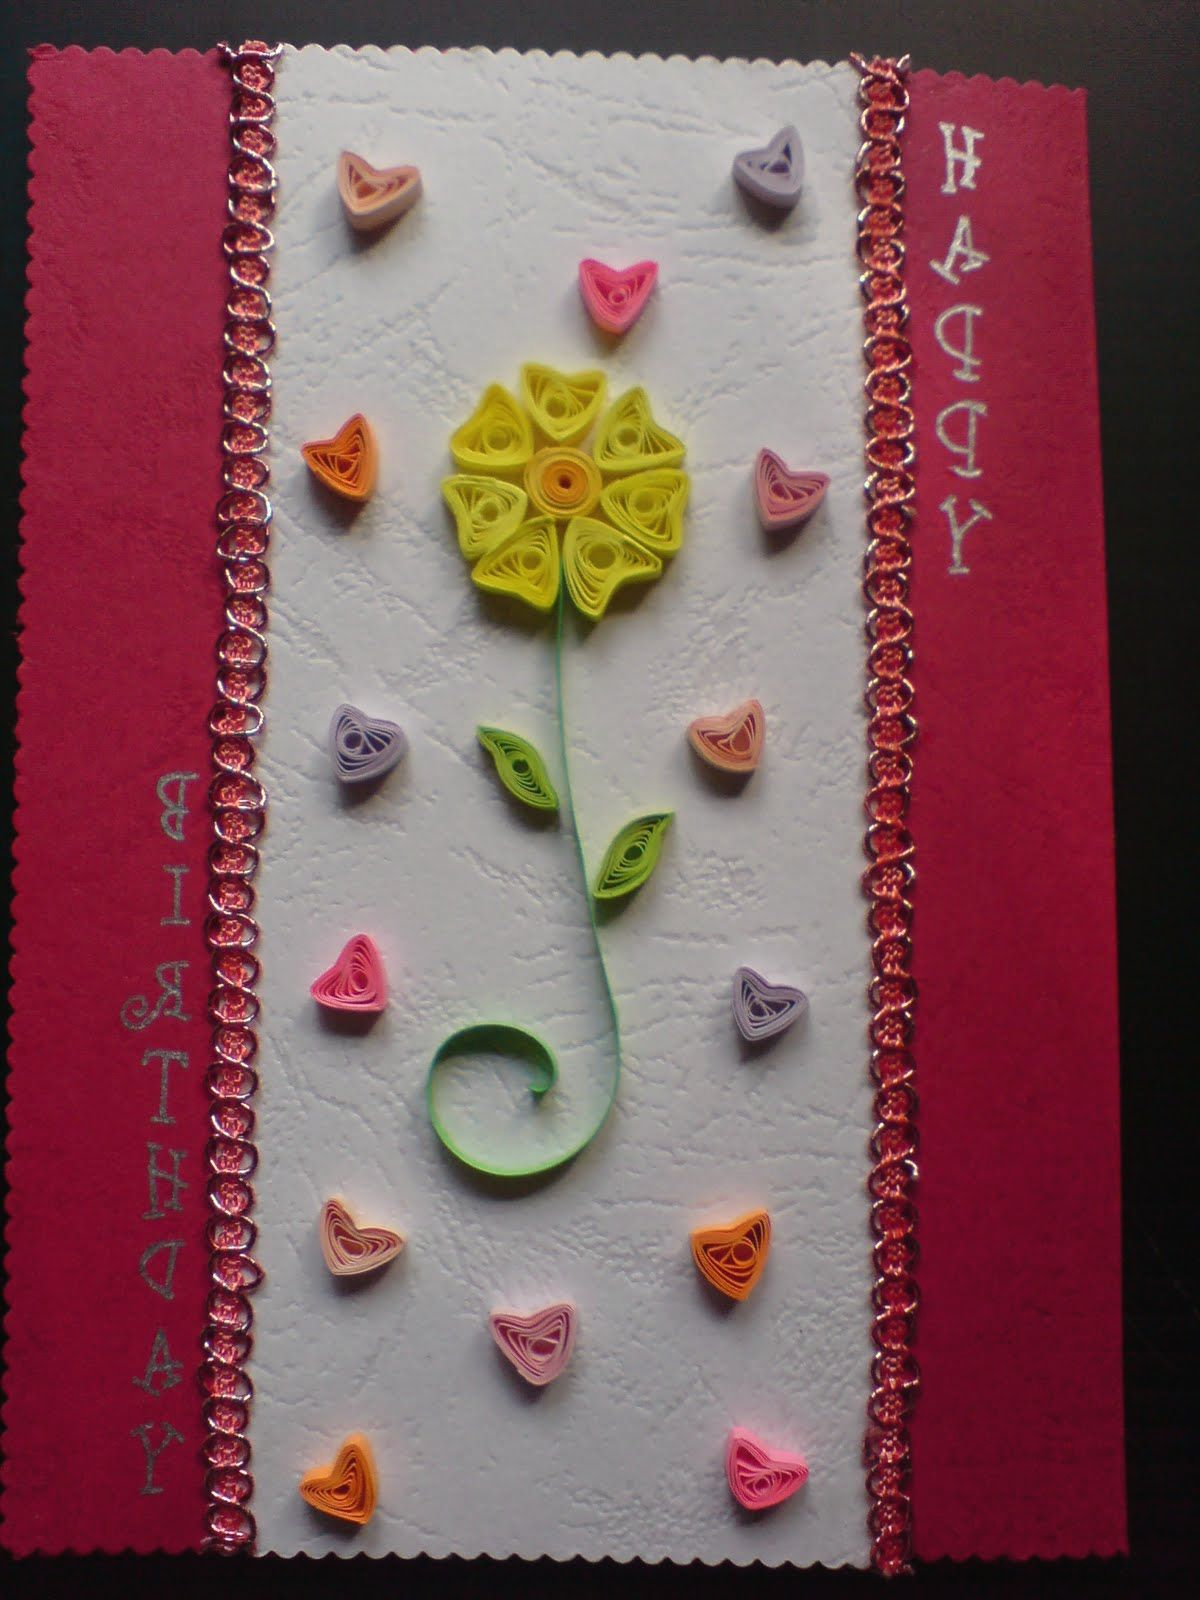 Free Download Of Handmade Greeting Cards Ideas In 2020 Handmade Greeting Card Designs Greeting Cards Handmade Christmas Cards Handmade